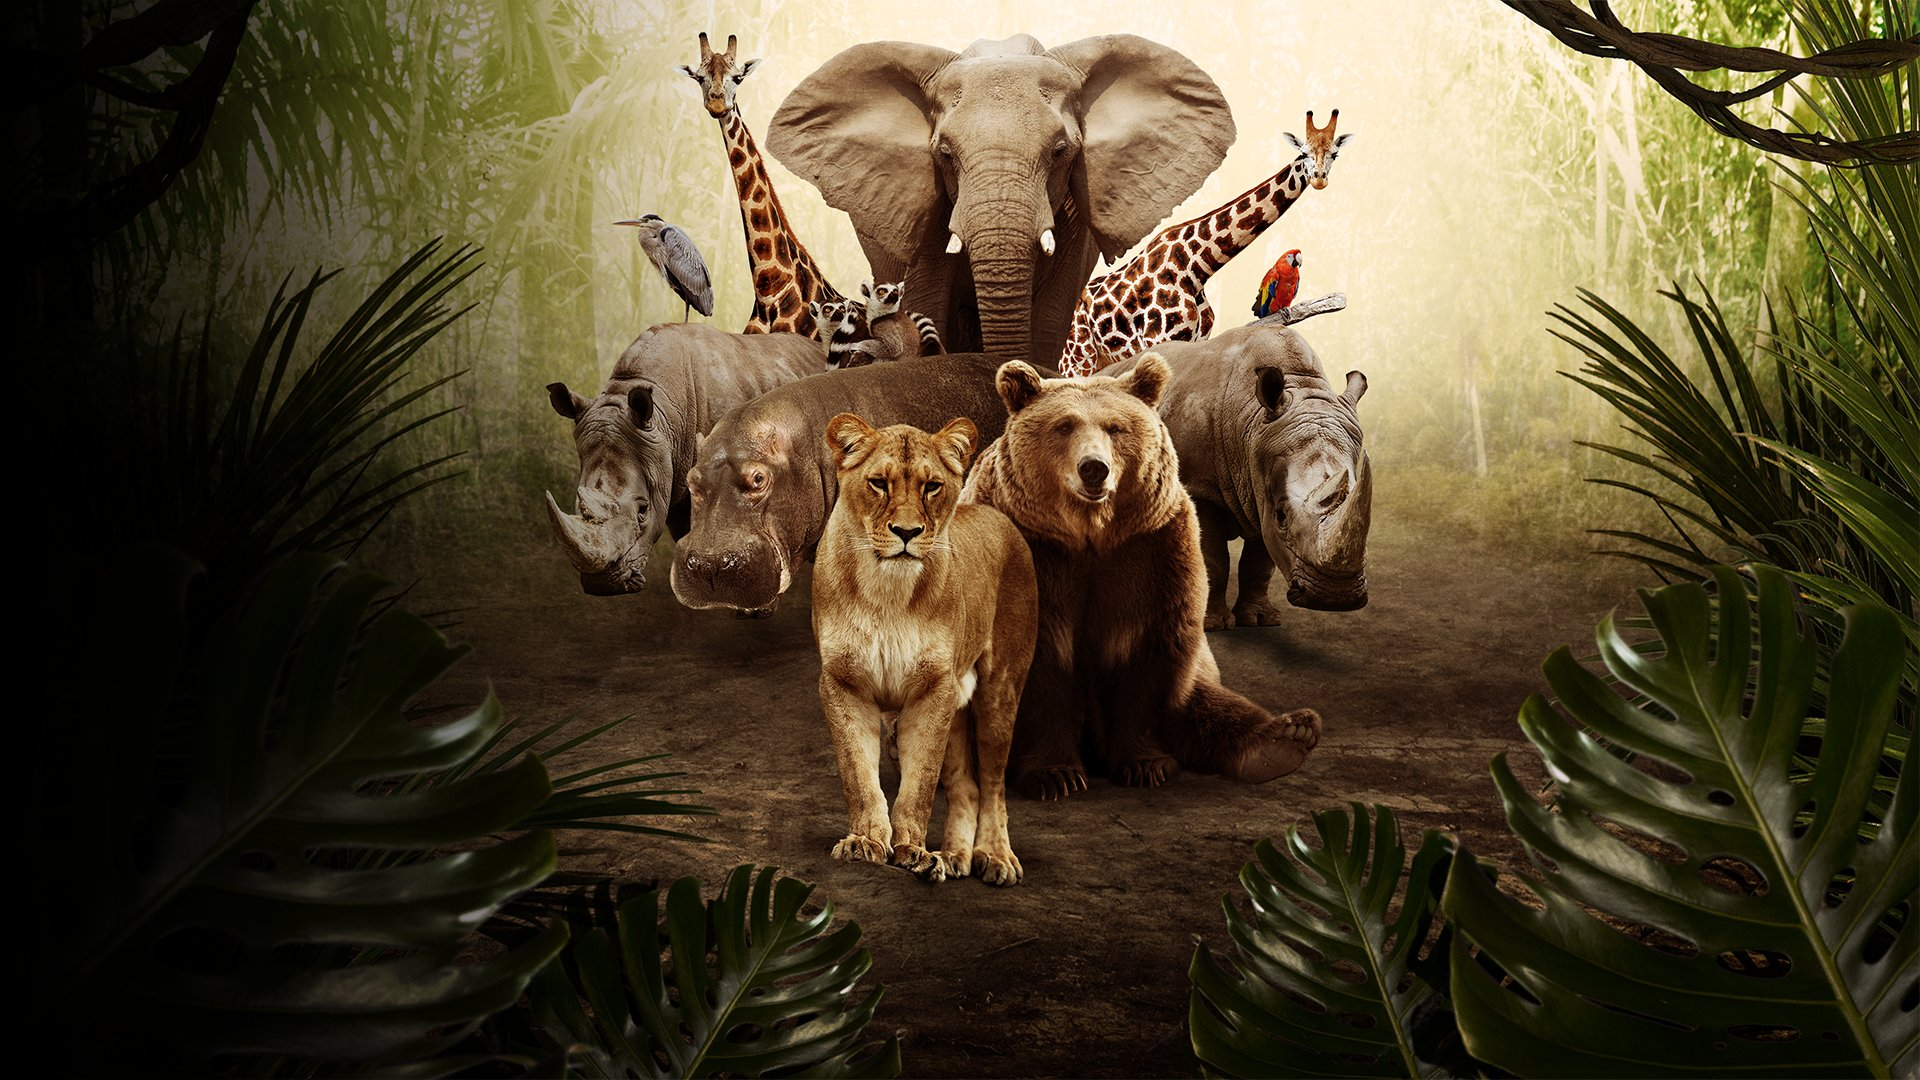 fond Les documentaires Zoo